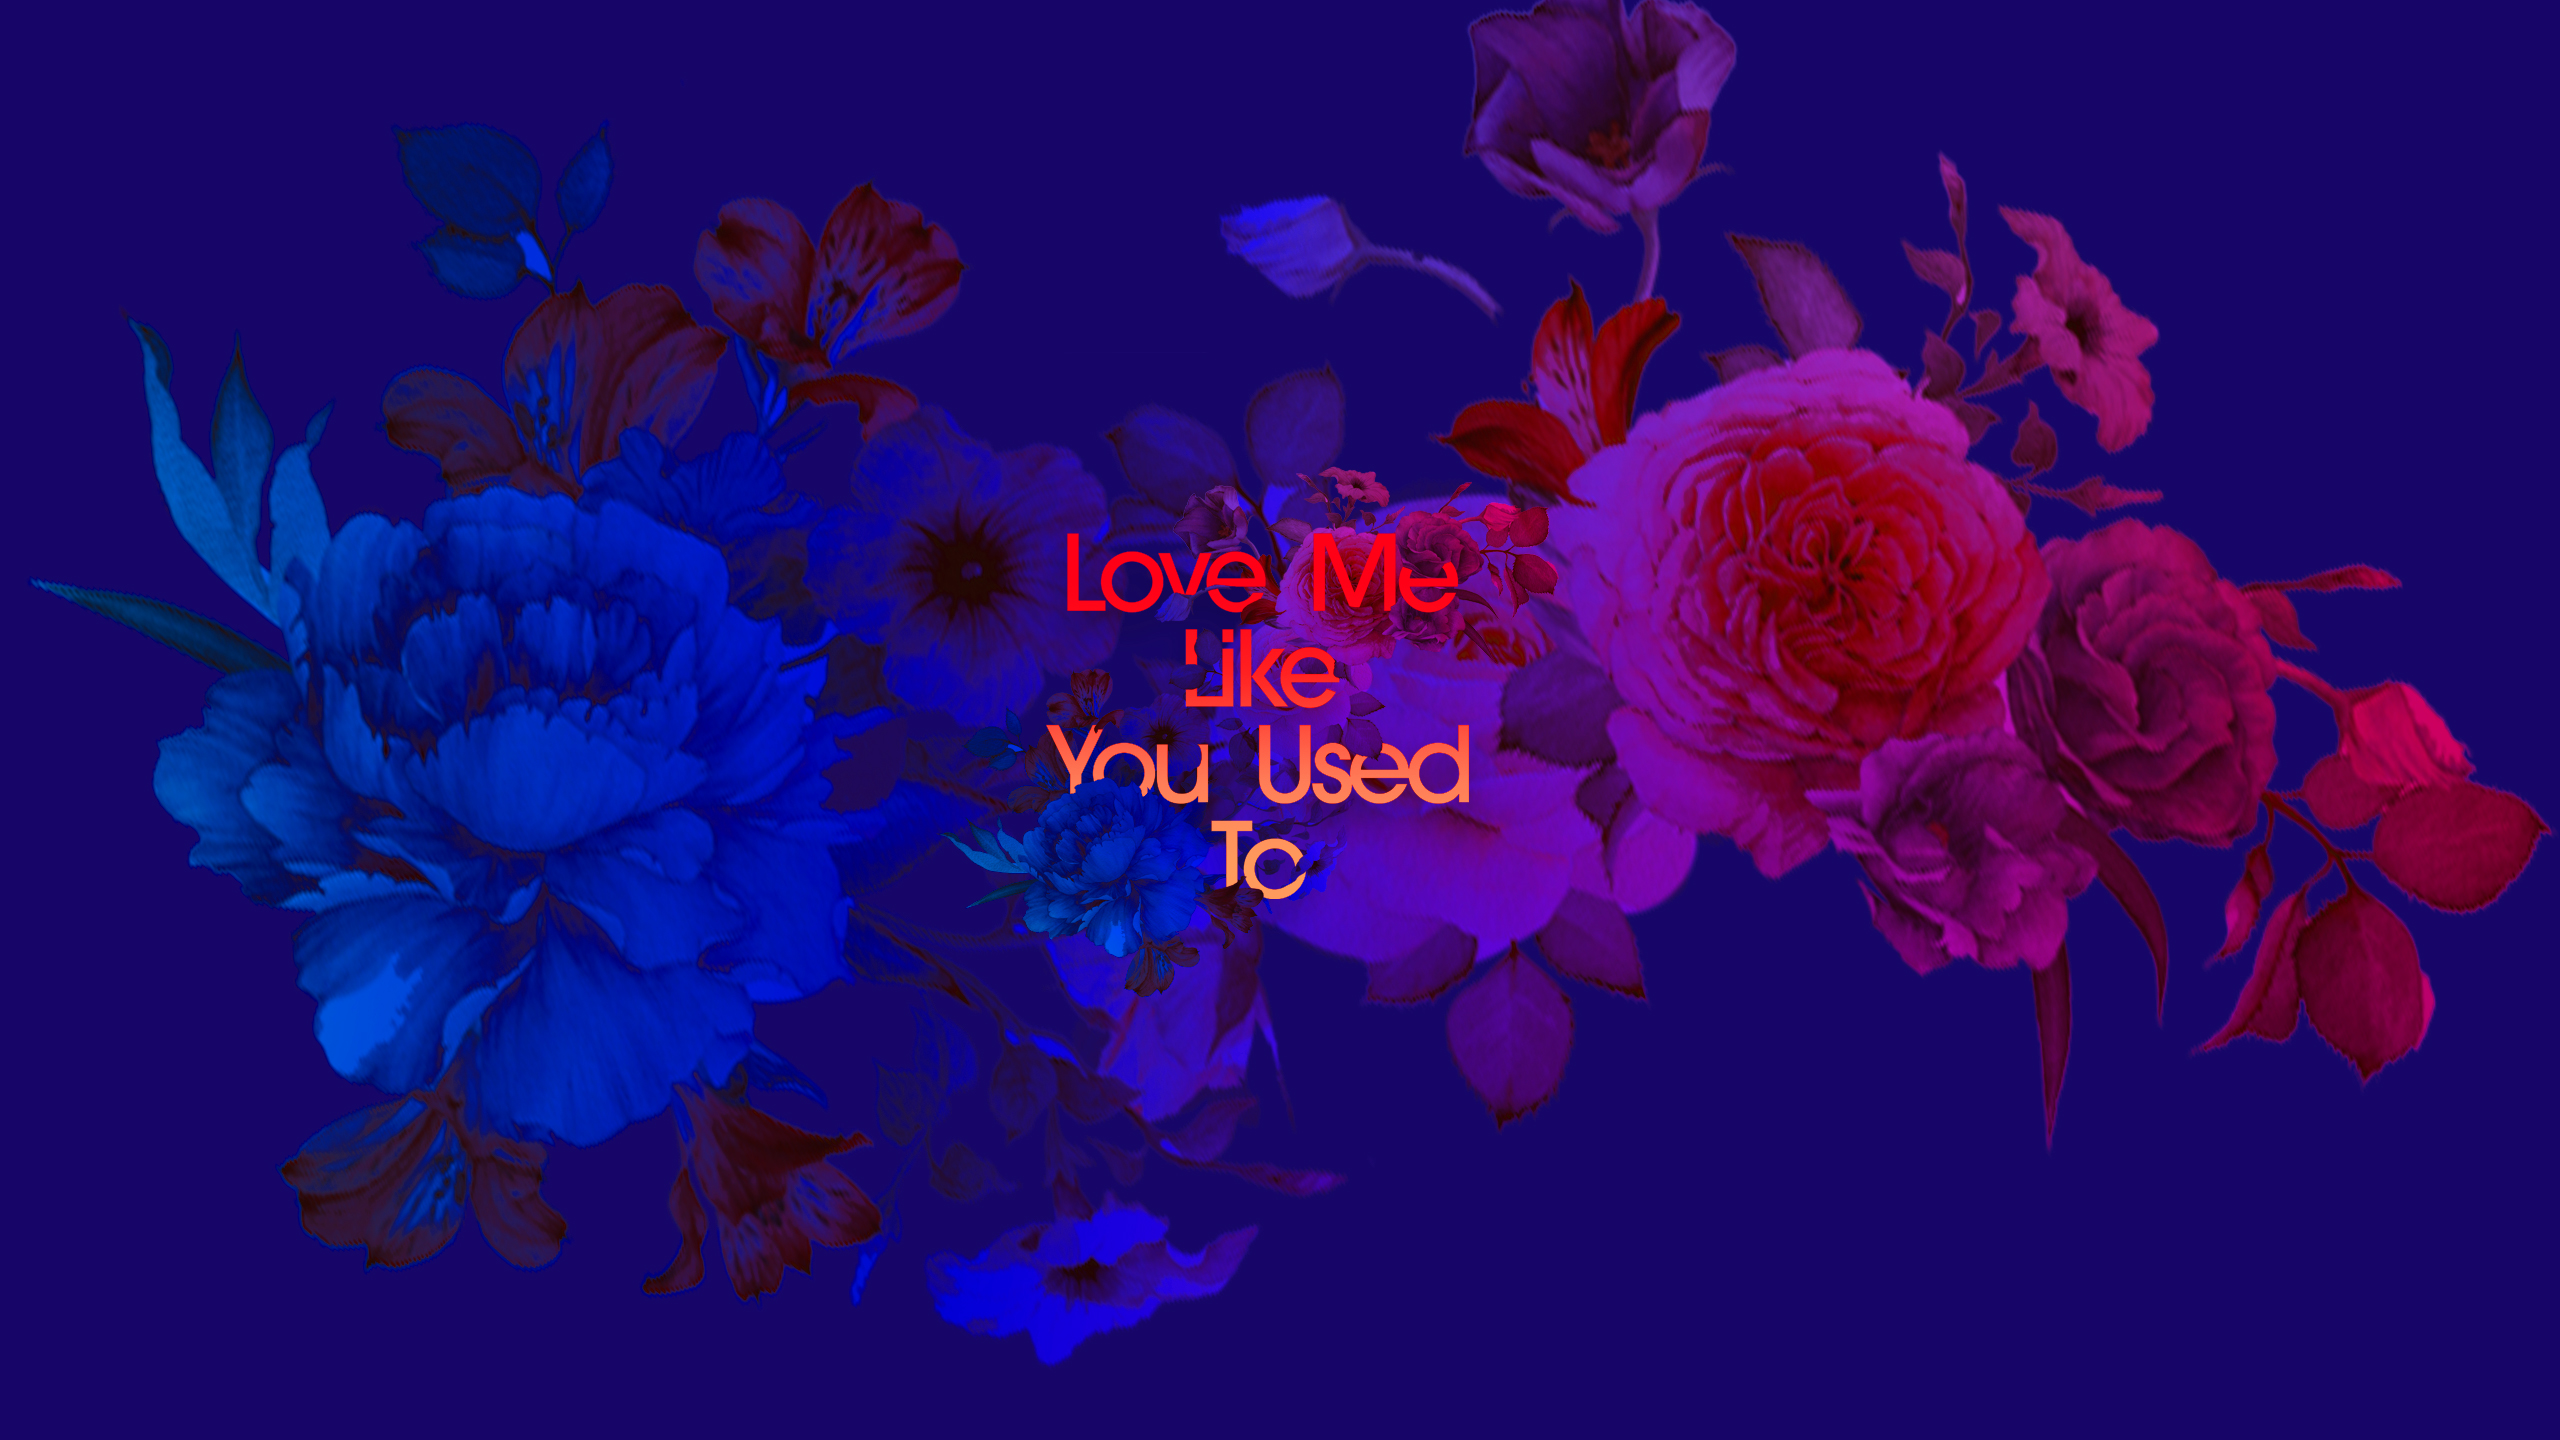 Kaskade - Love Me Like You Used To